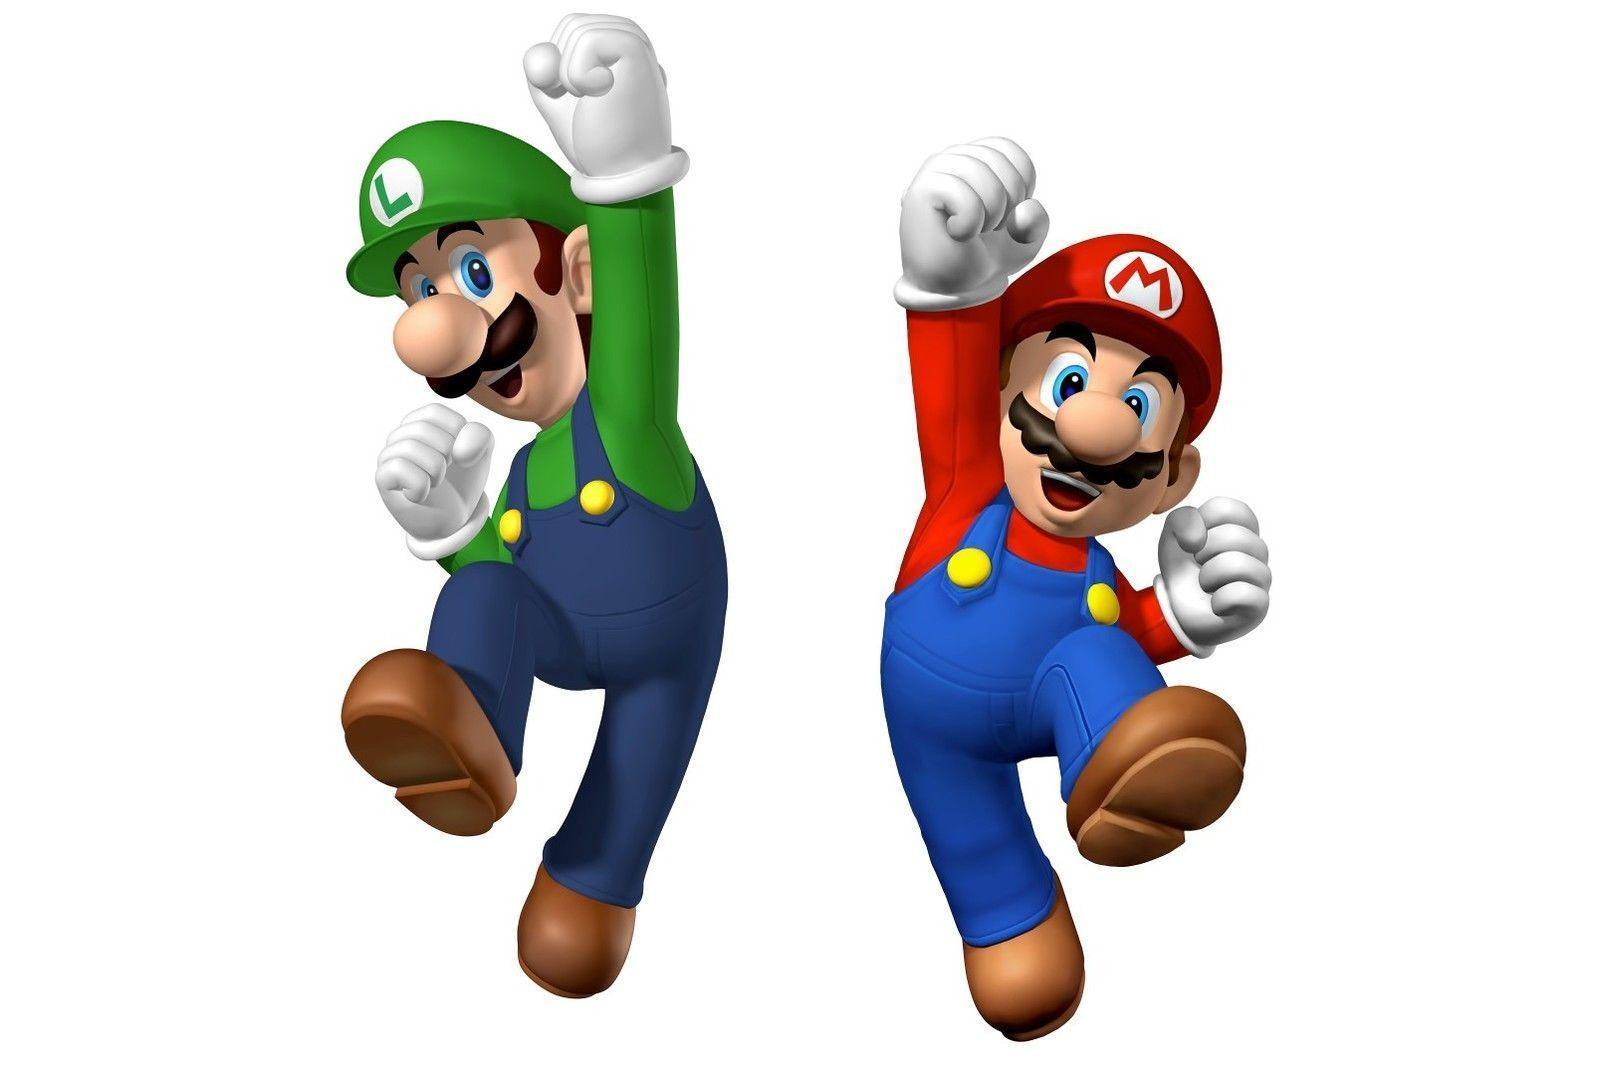 Which one are you: Mario or Luigi?